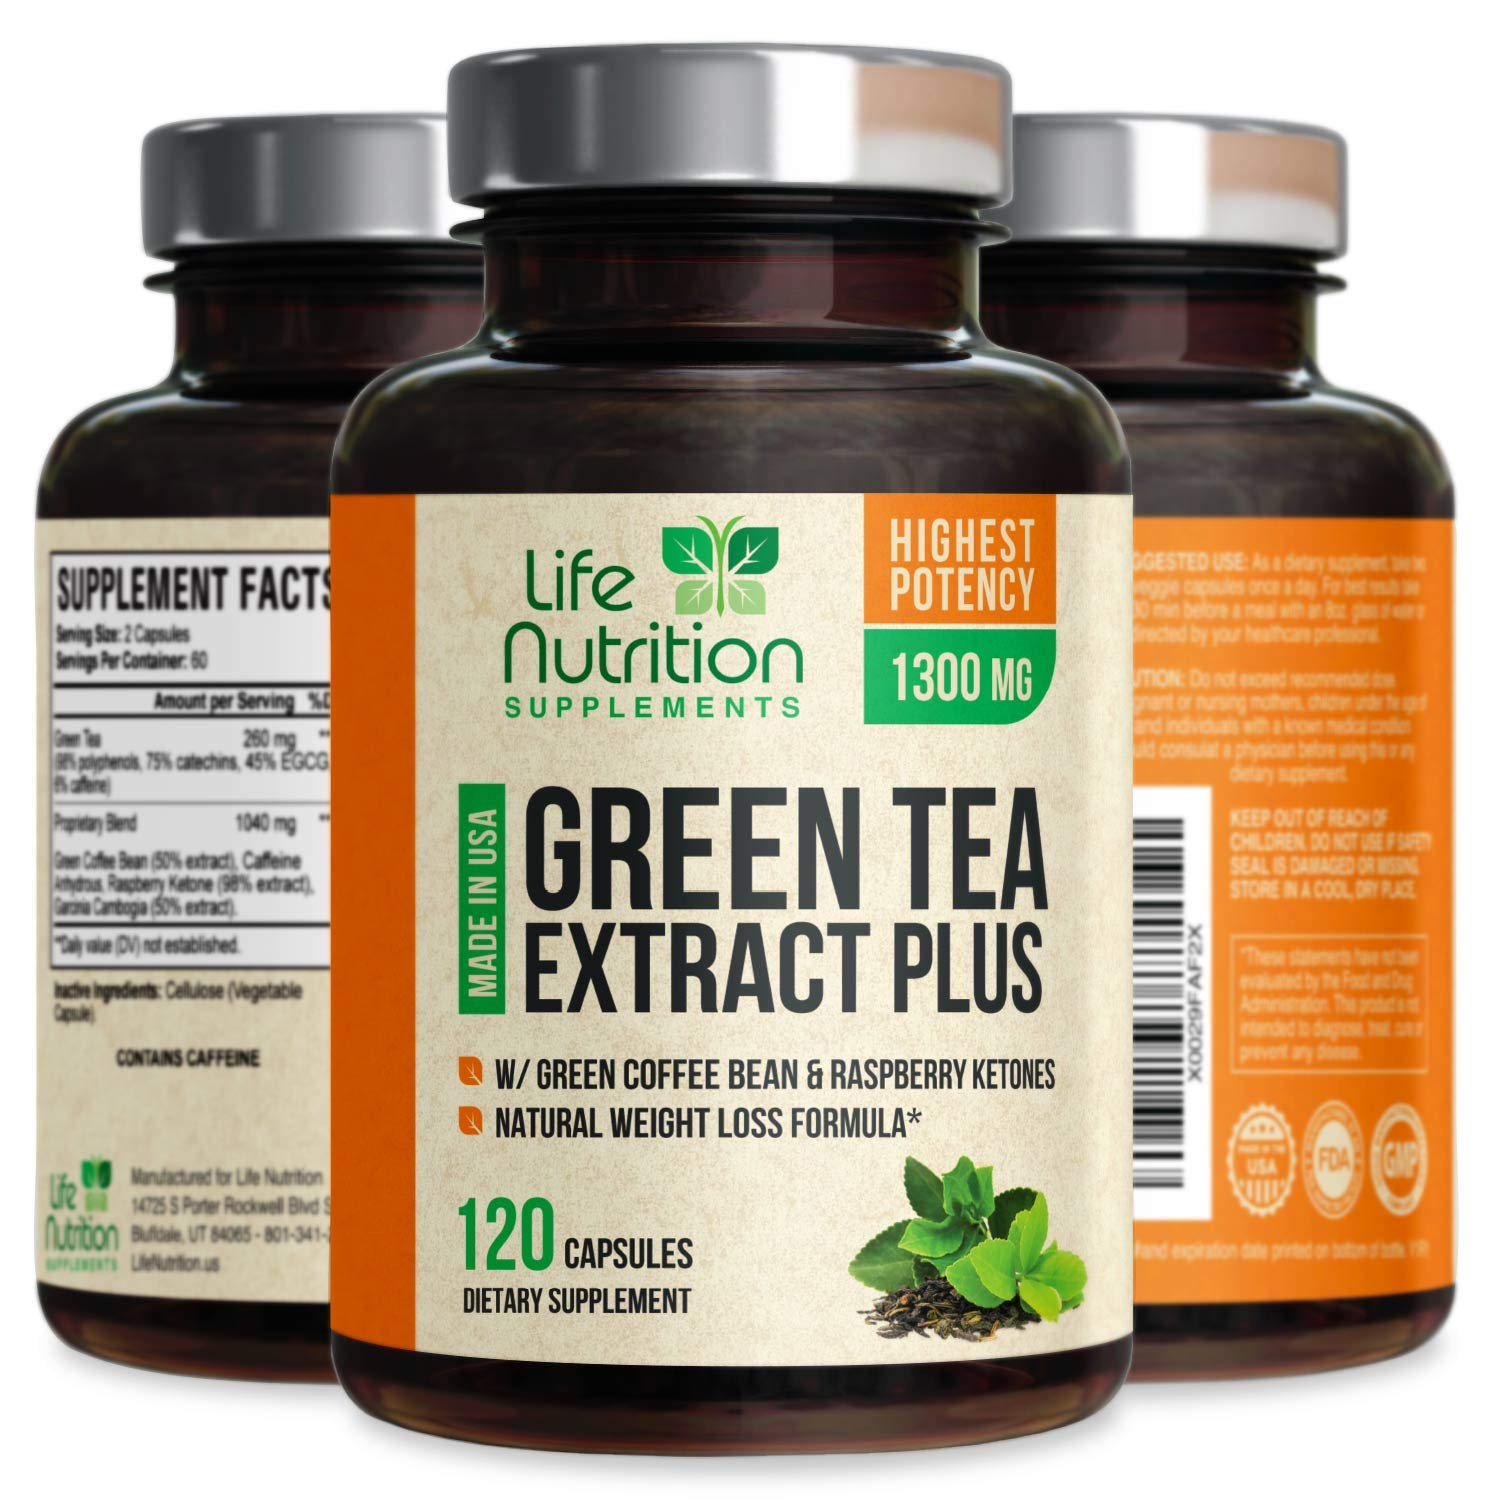 Green Tea Extract 98% with EGCG for Weight Loss 1300mg - Boost Metabolism for Healthy Heart - Antioxidants & Polyphenols for Immune System - Gentle Caffeine - Natural Fat Burner Pills - 120 Capsules